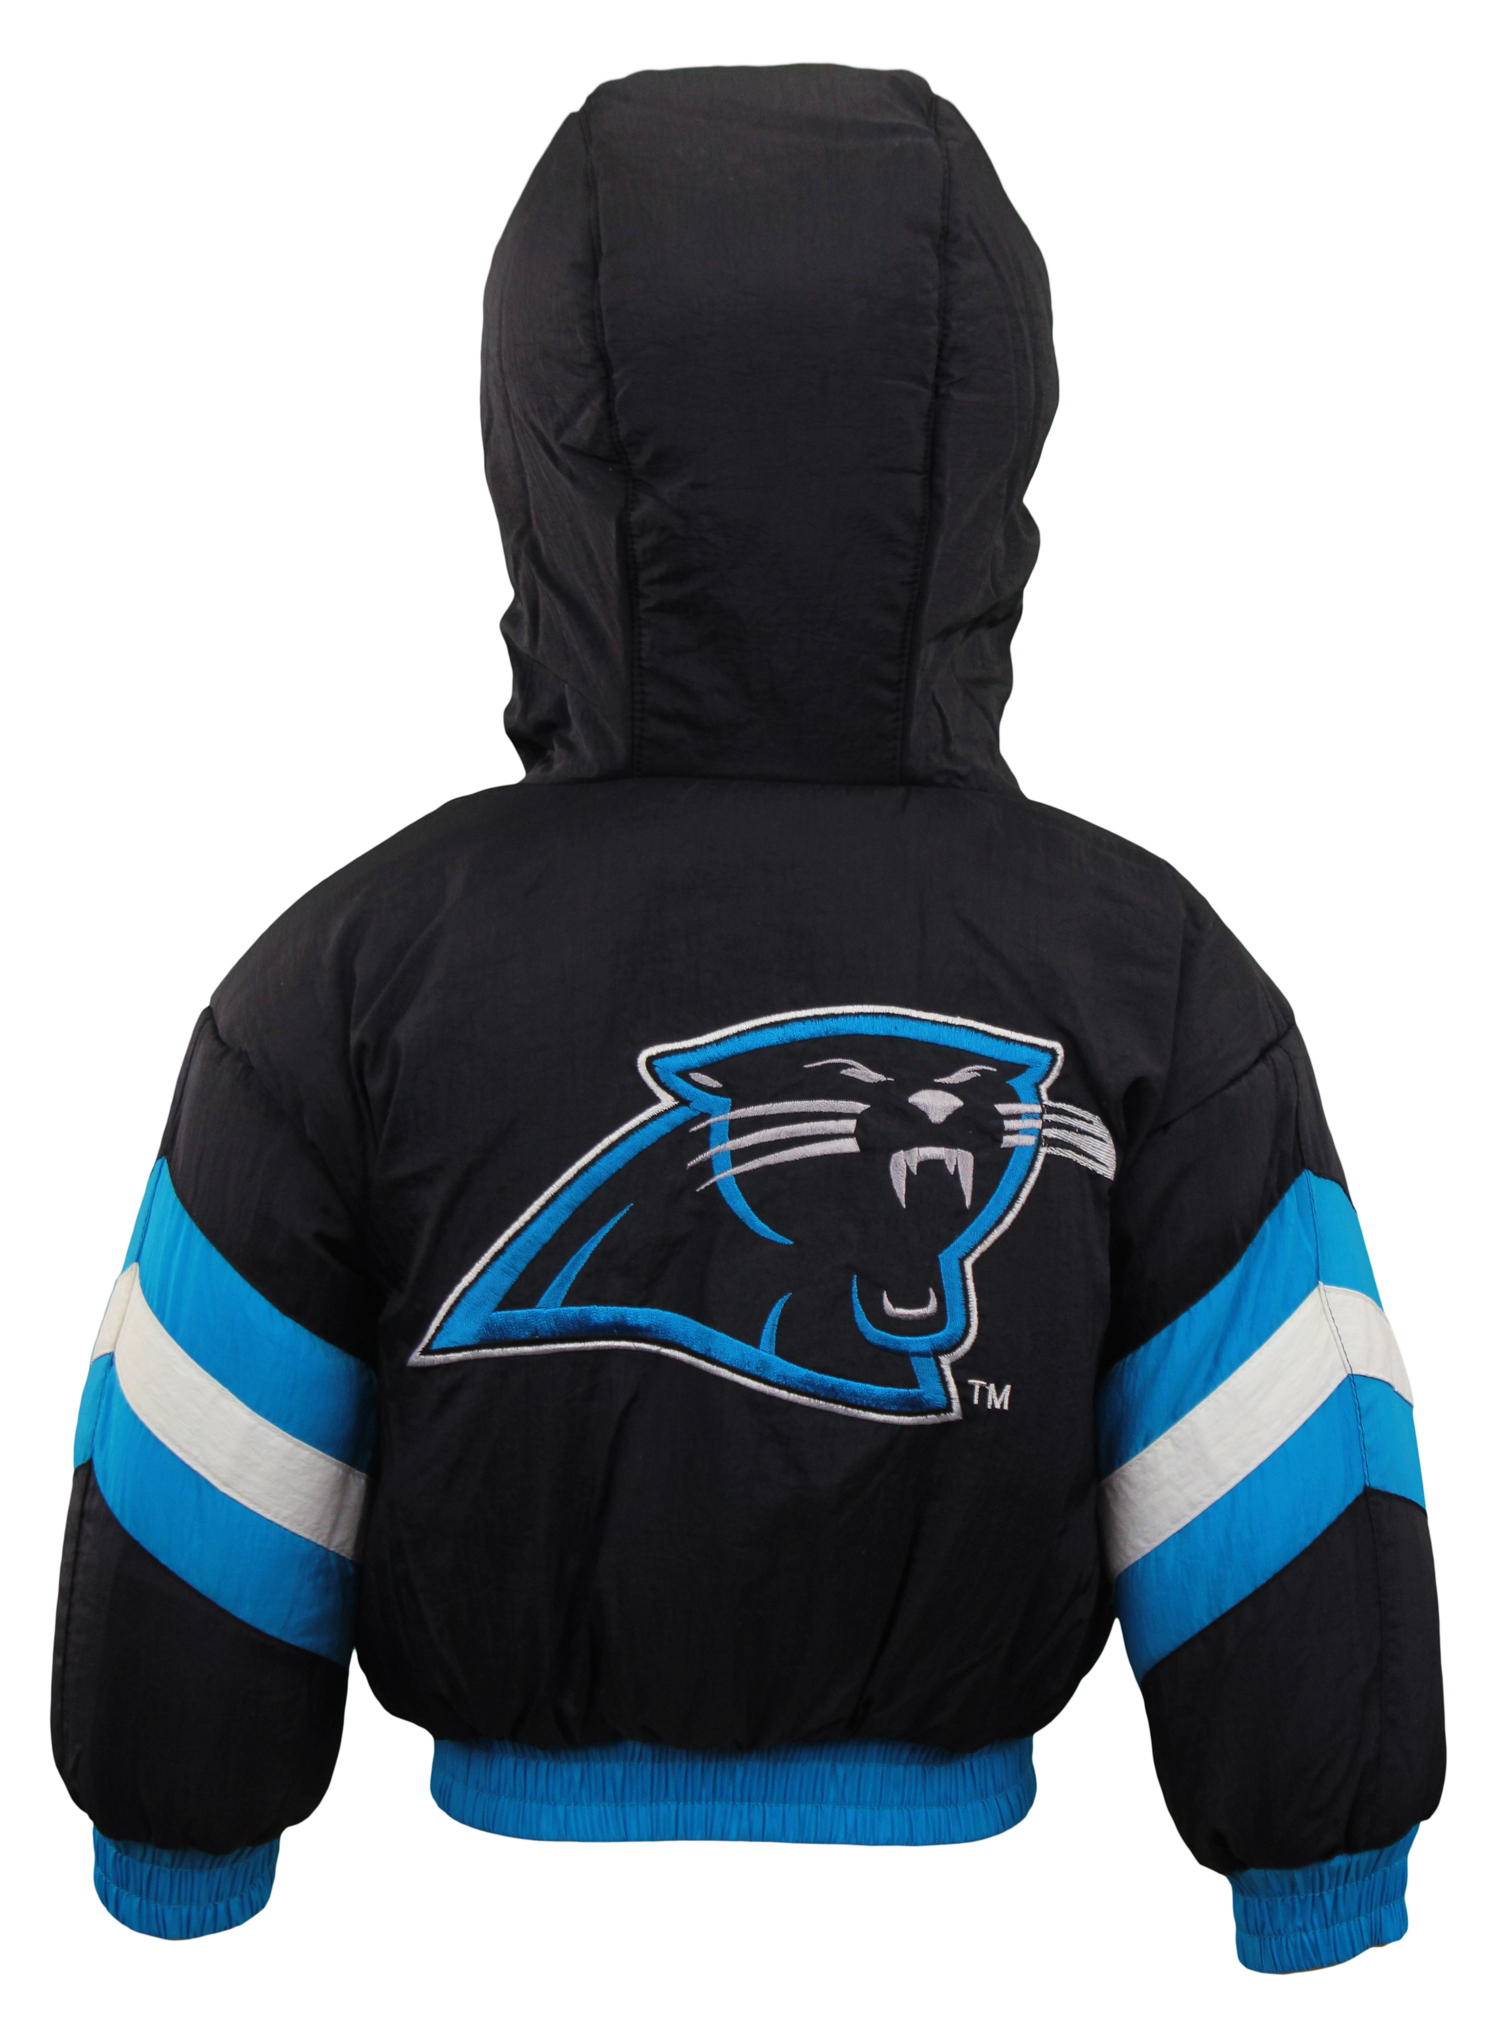 c4c3a61e Details about Carolina Panthers NFL Boys Toddlers Full Zip Reversible  Hooded Bomber Jacket